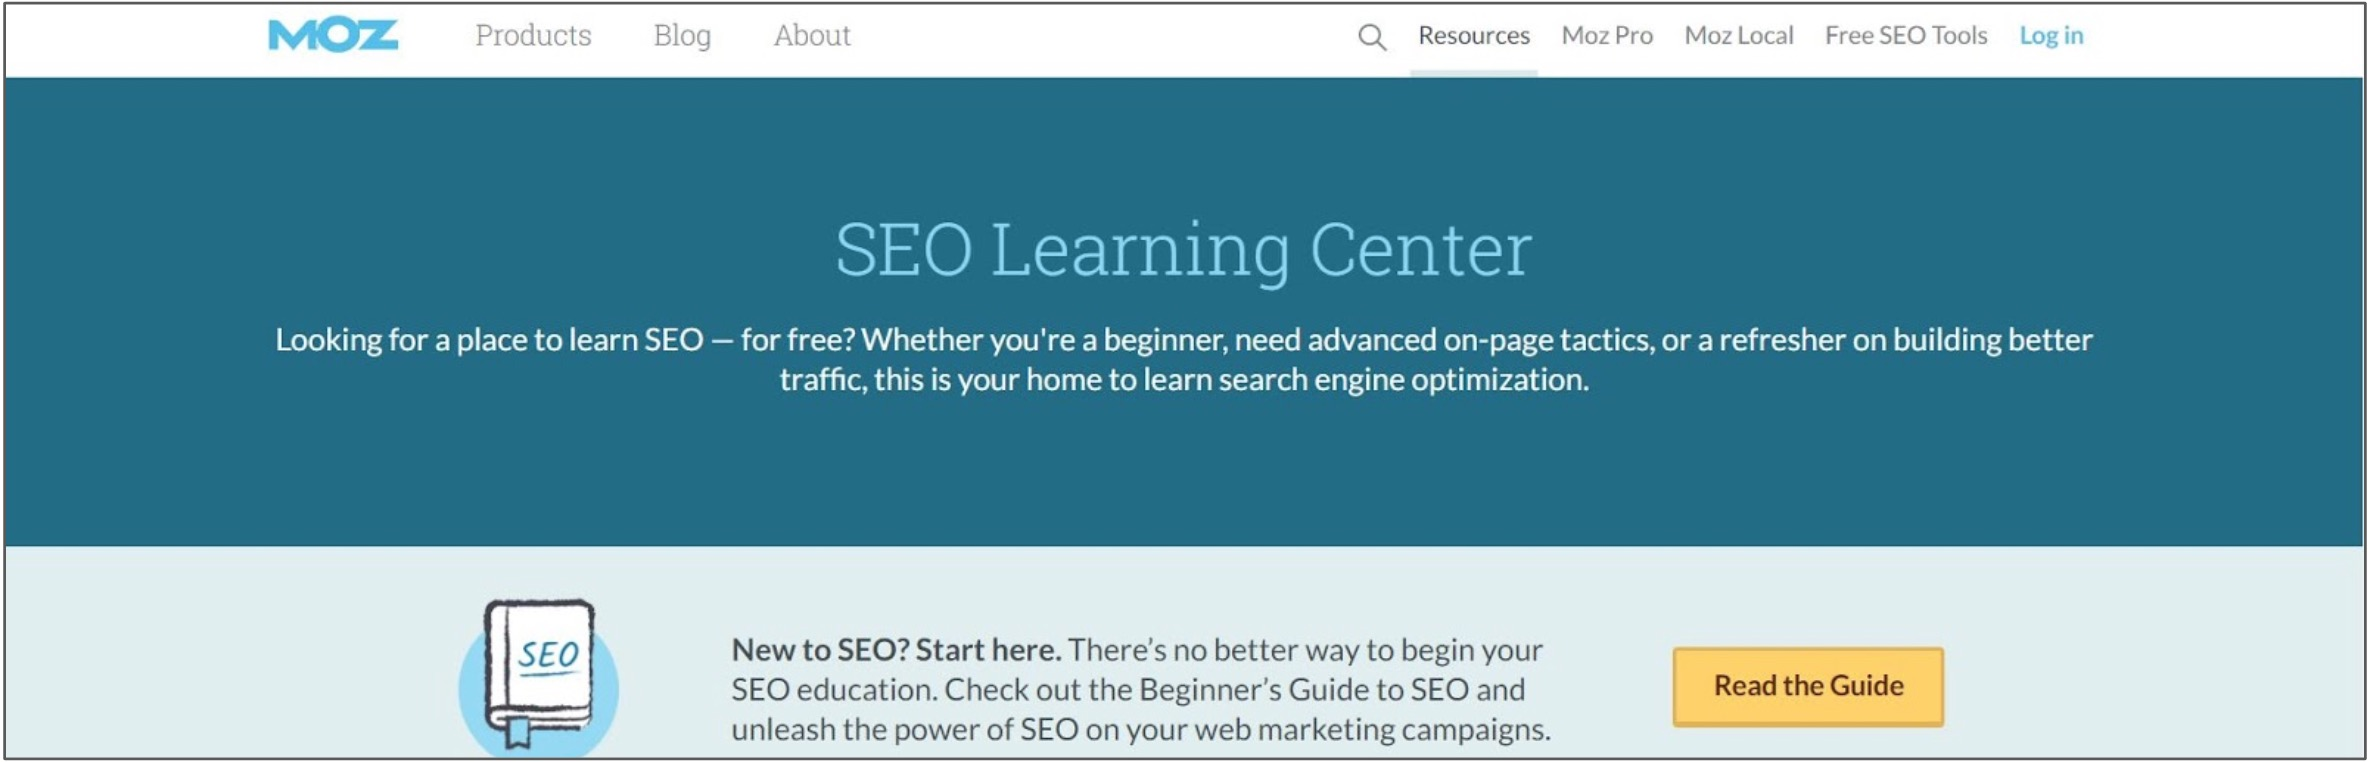 Screenshot of an SEO Learning Centre and courses on Moz